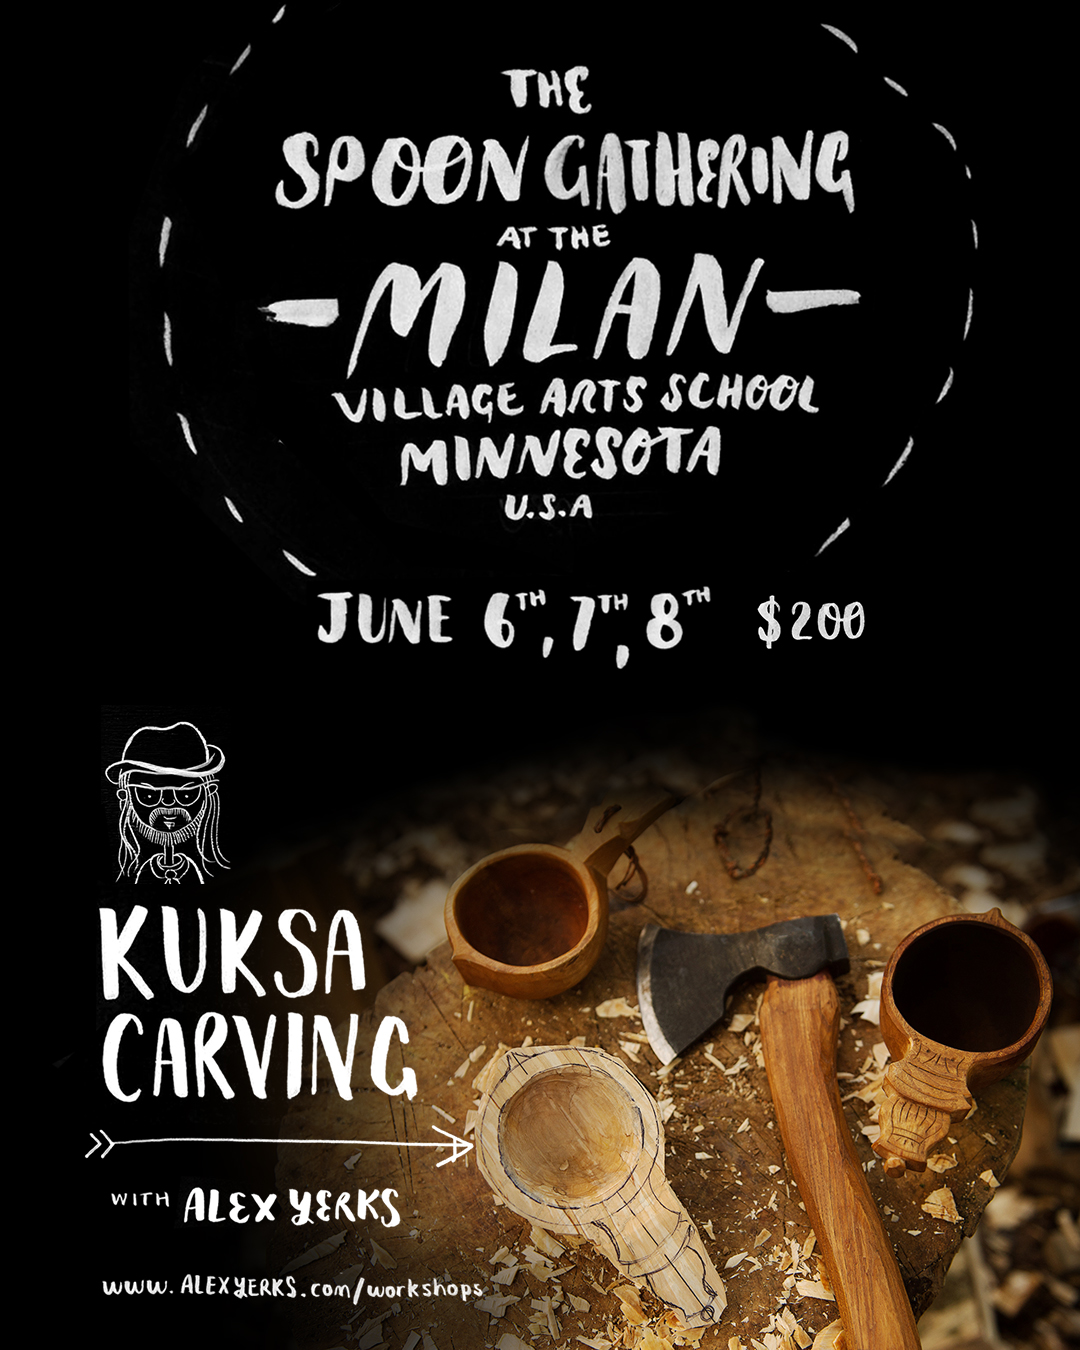 Kuksa Carving - 2.5 day class /Tues 6th, Wed 7th, Thurs 8th June $200